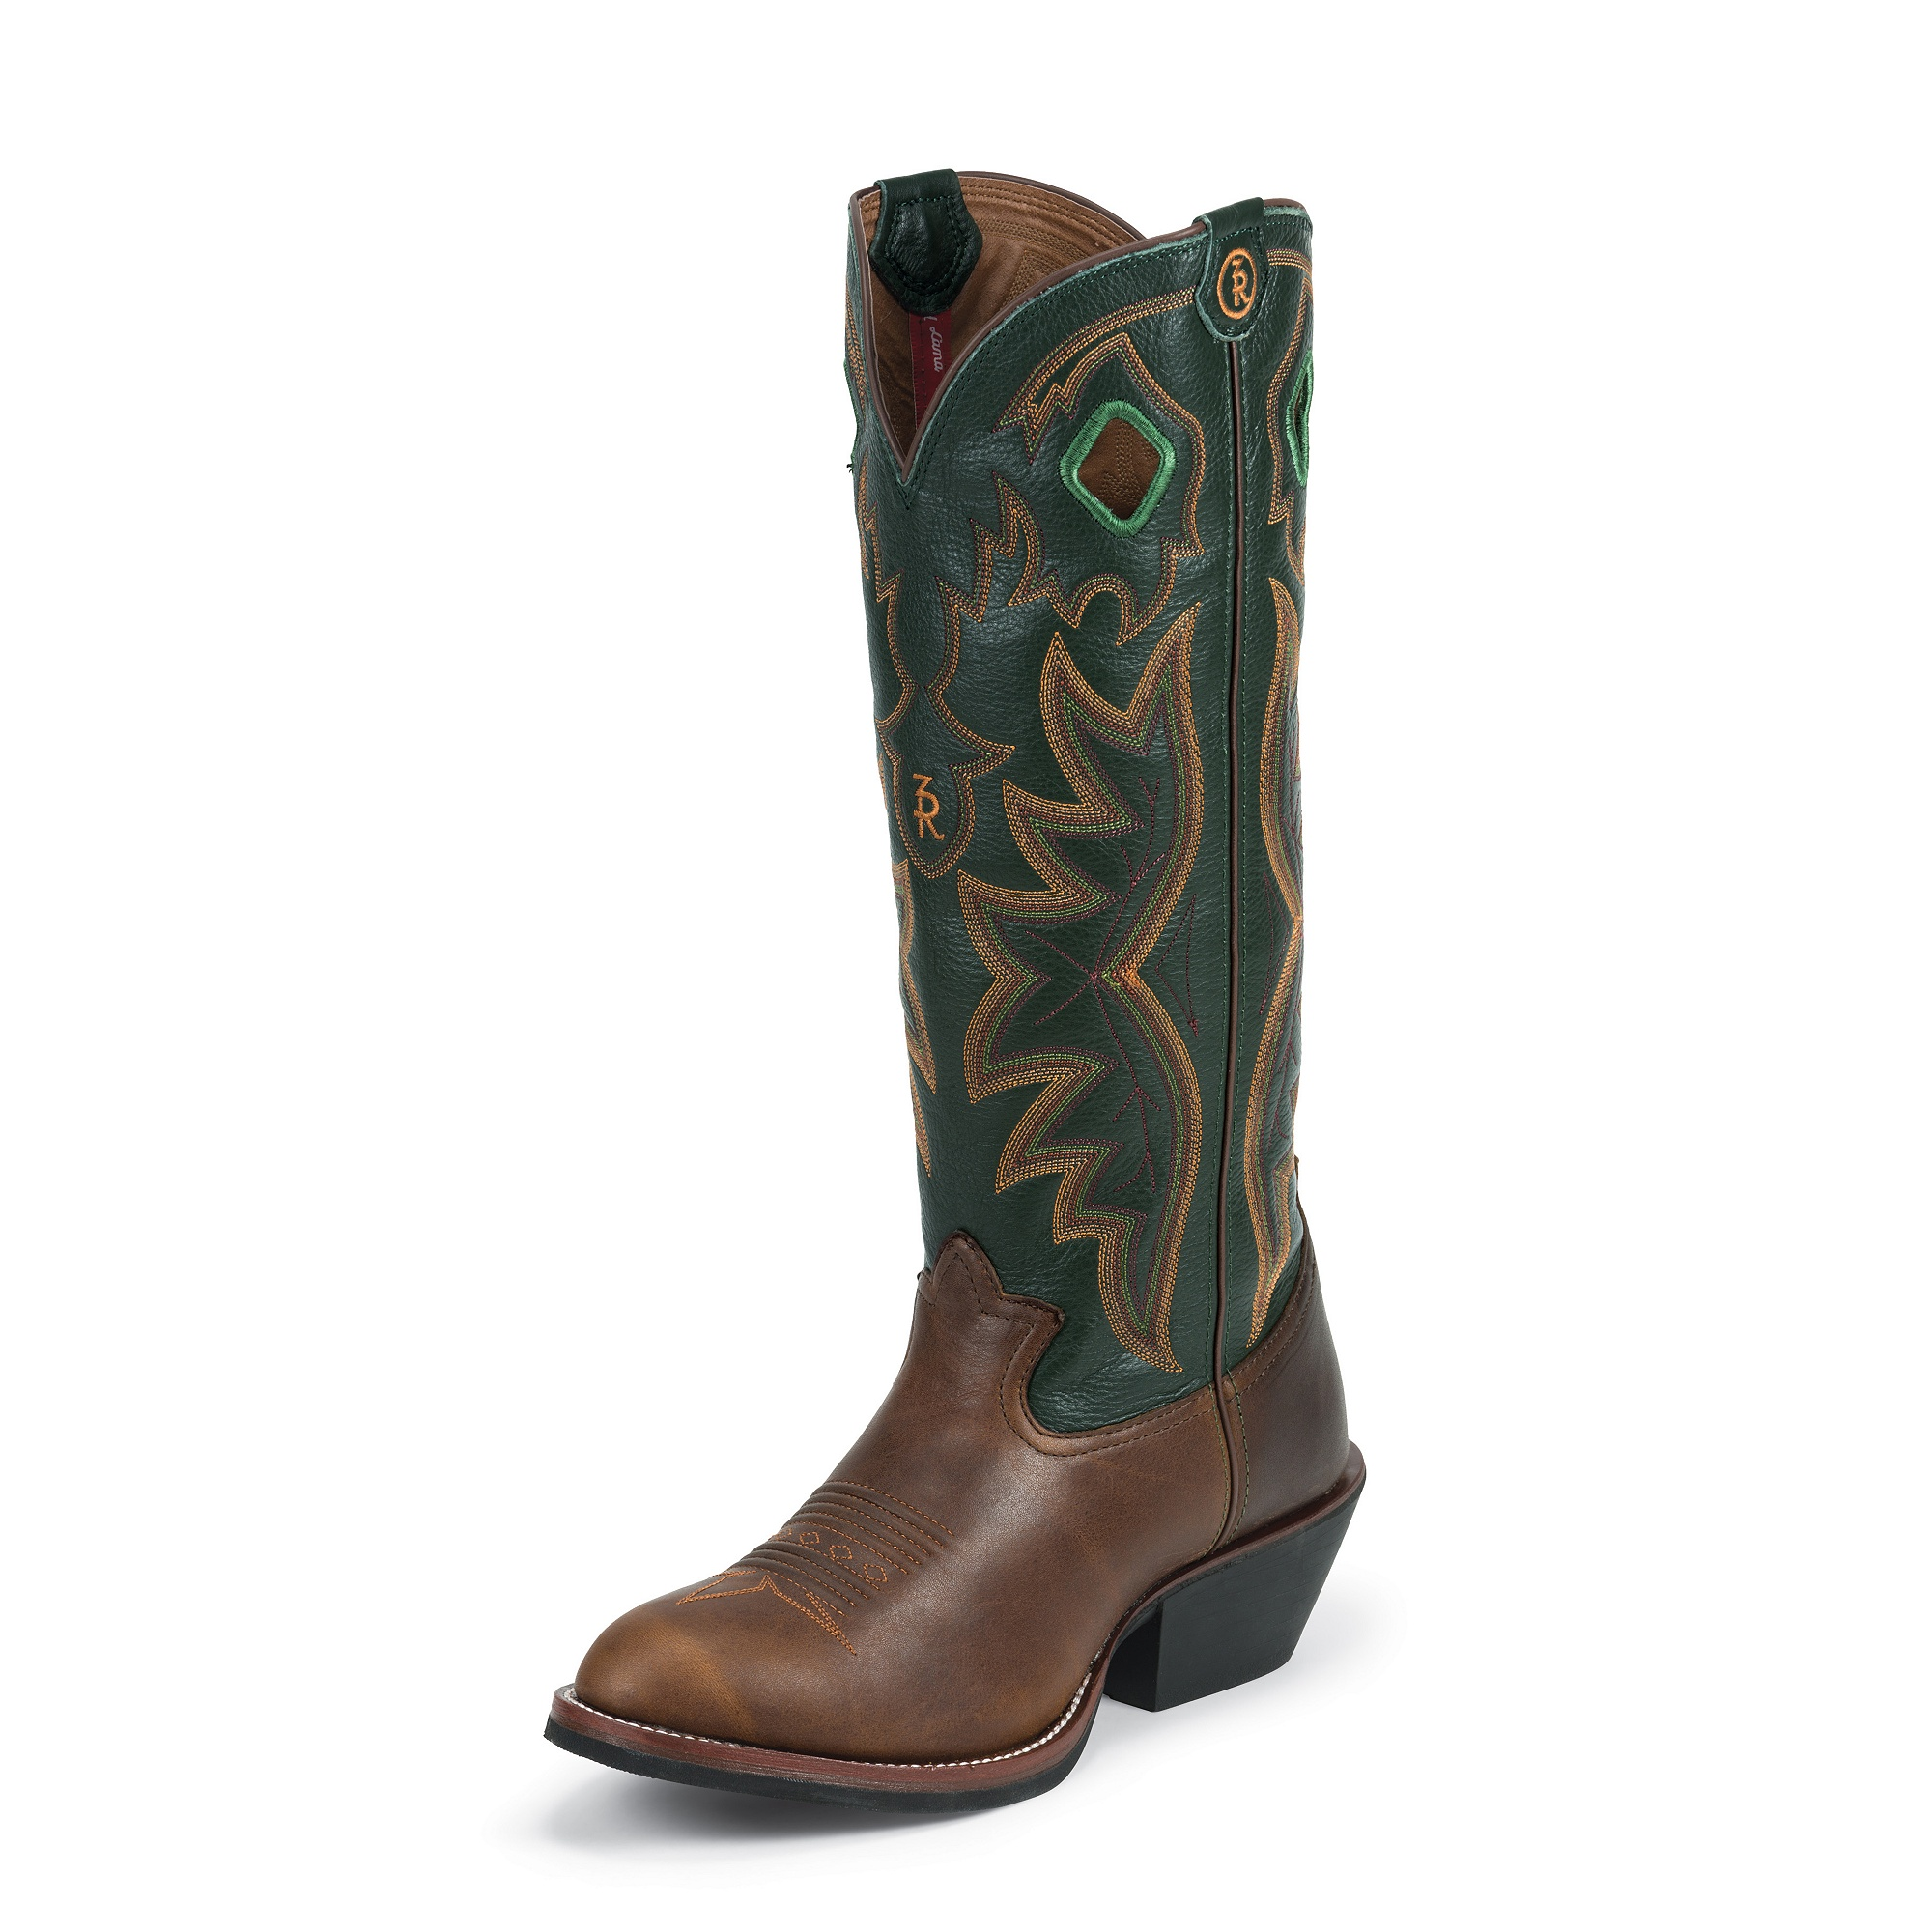 RR1016 Men's Tony Lama 3R Whiskey Dawson Cowboy Boot